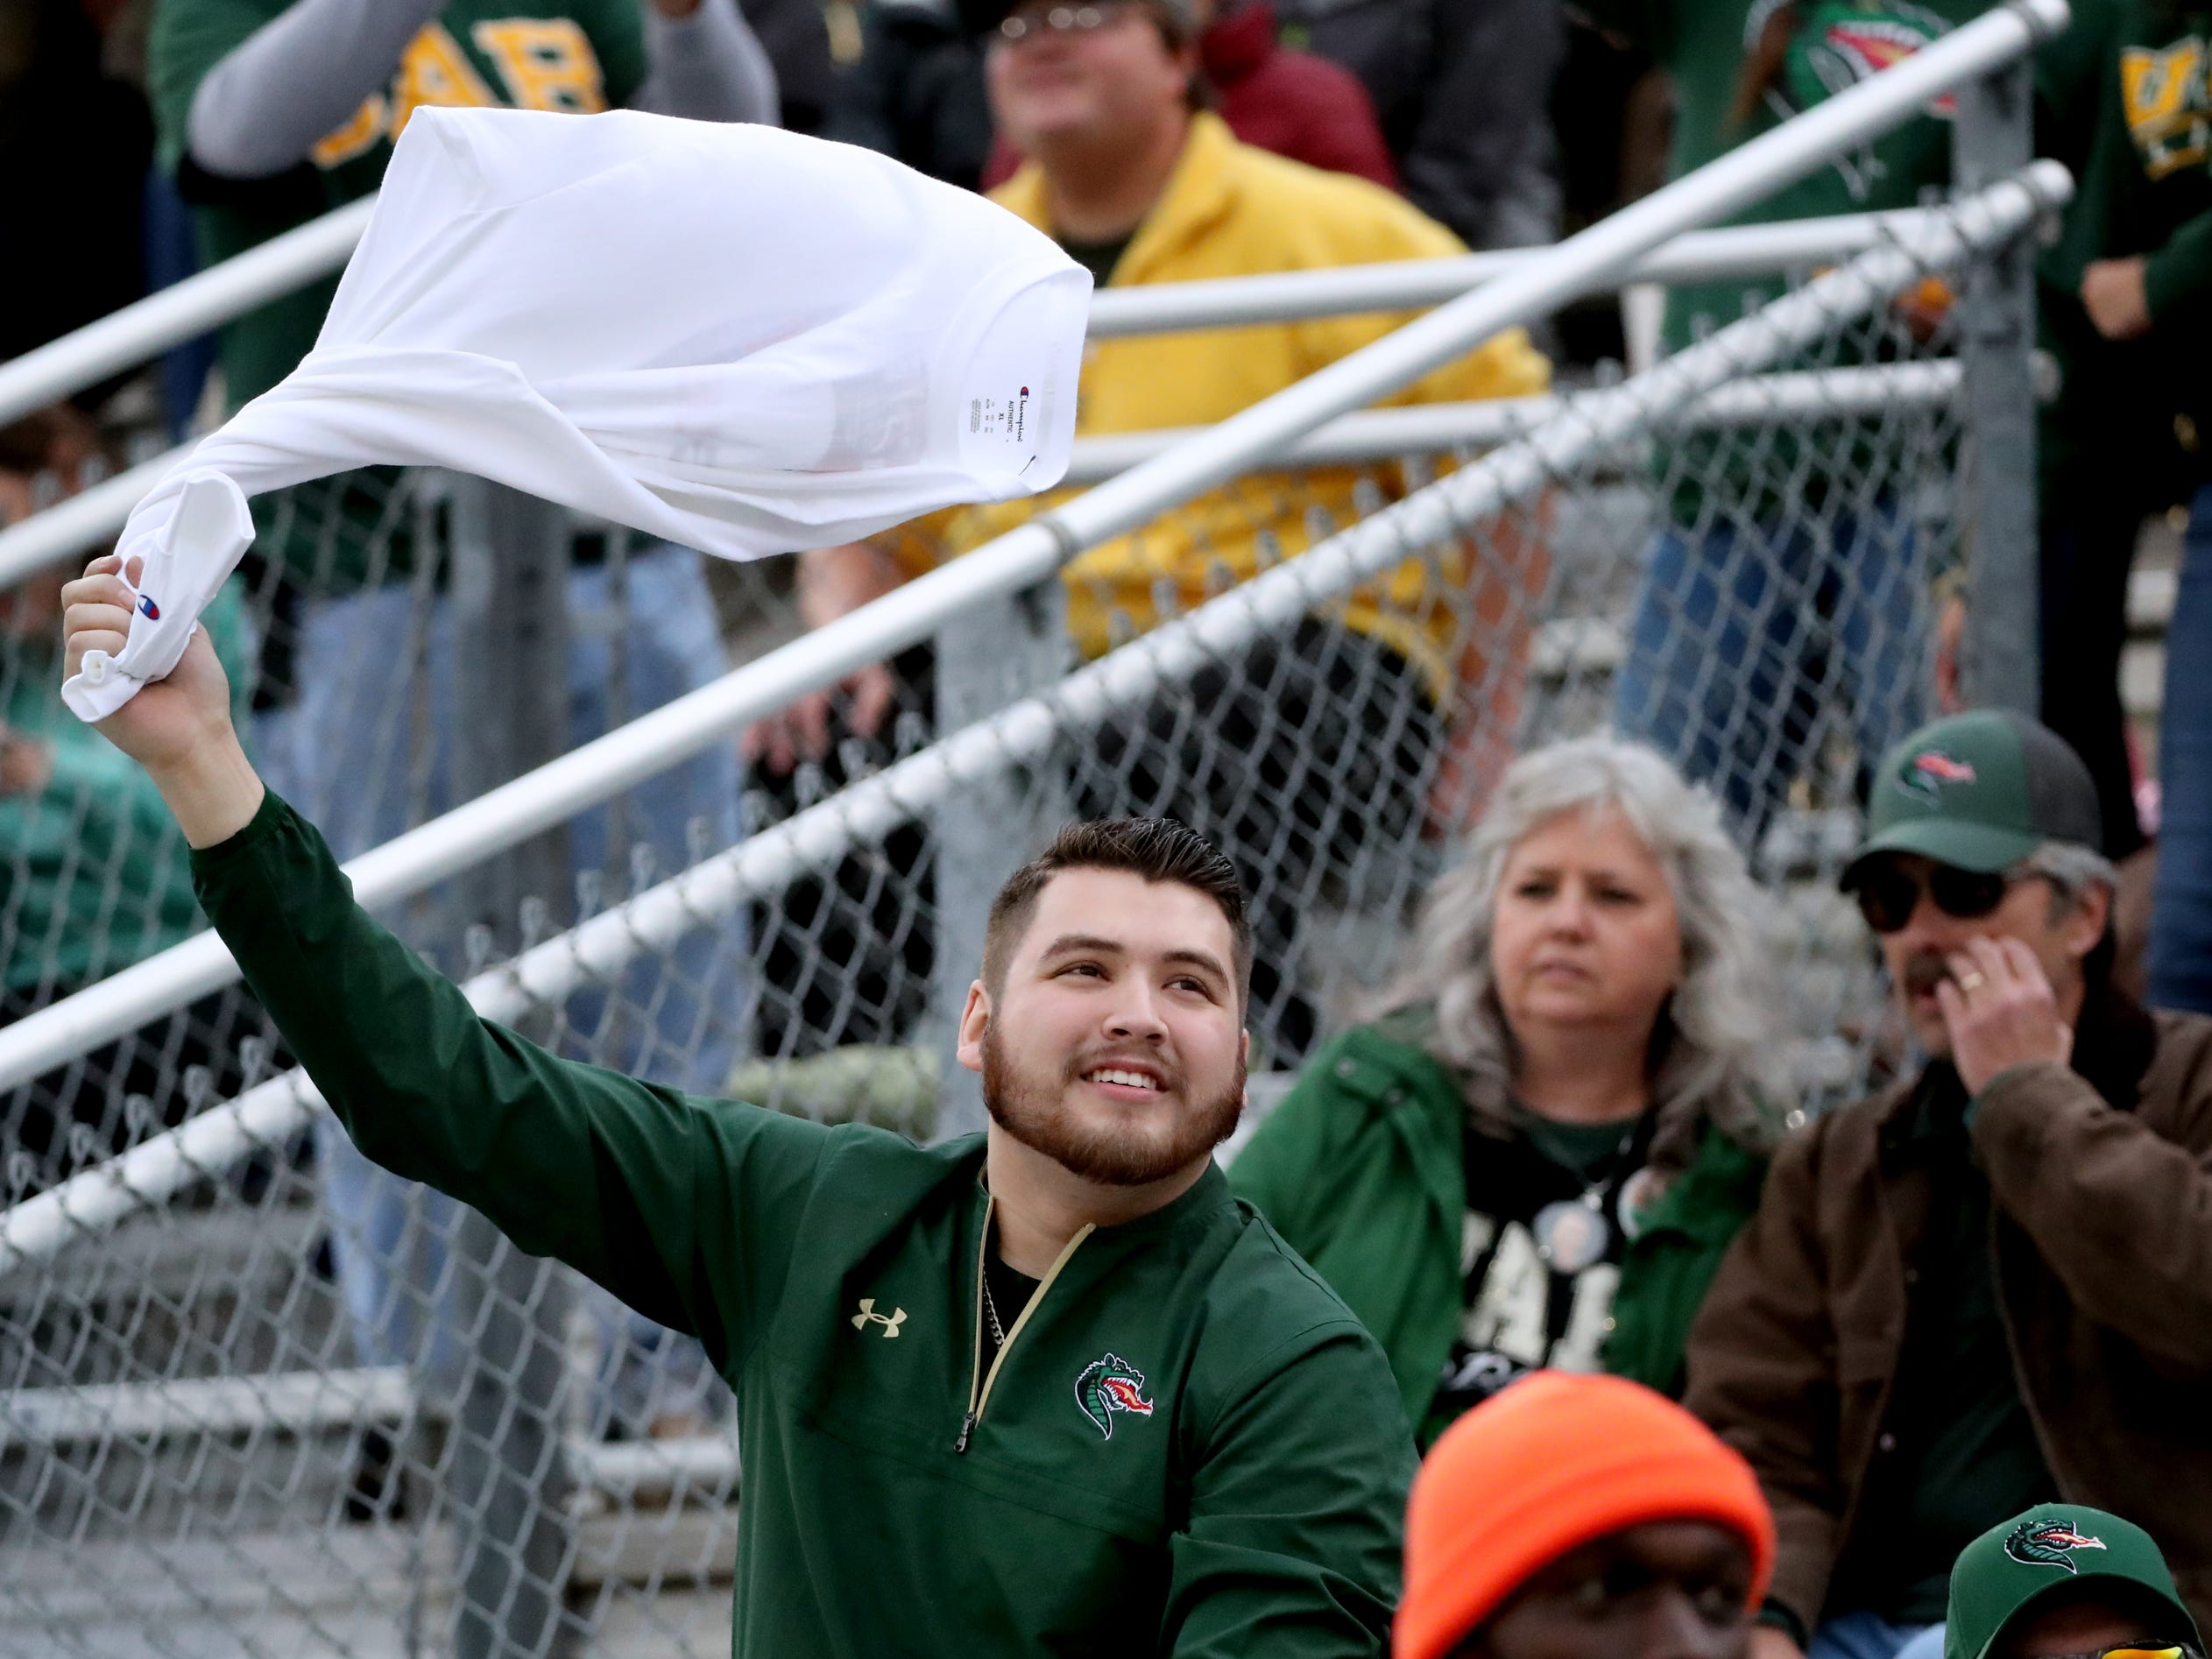 UAB fan cheers during the Conference USA Championship game against MTSU at MTSU on Saturday, Dec. 1, 2018.